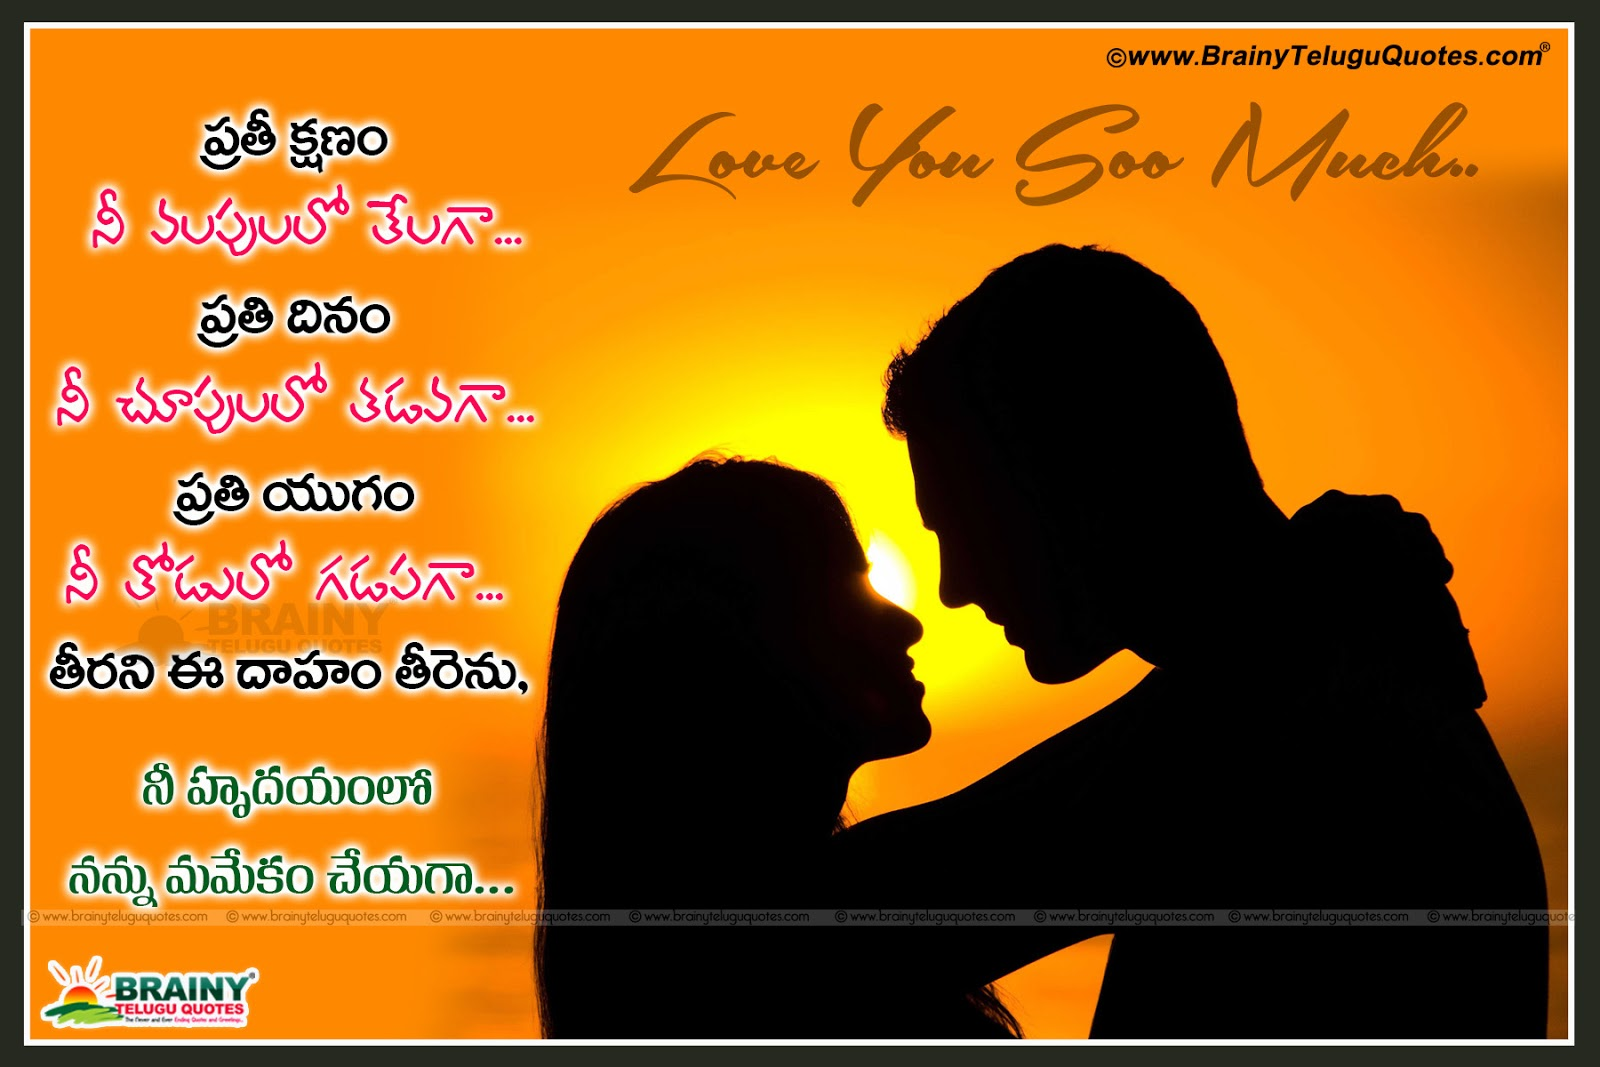 Here Is A Best Love Quotations And Nice Images Online Love Feelings